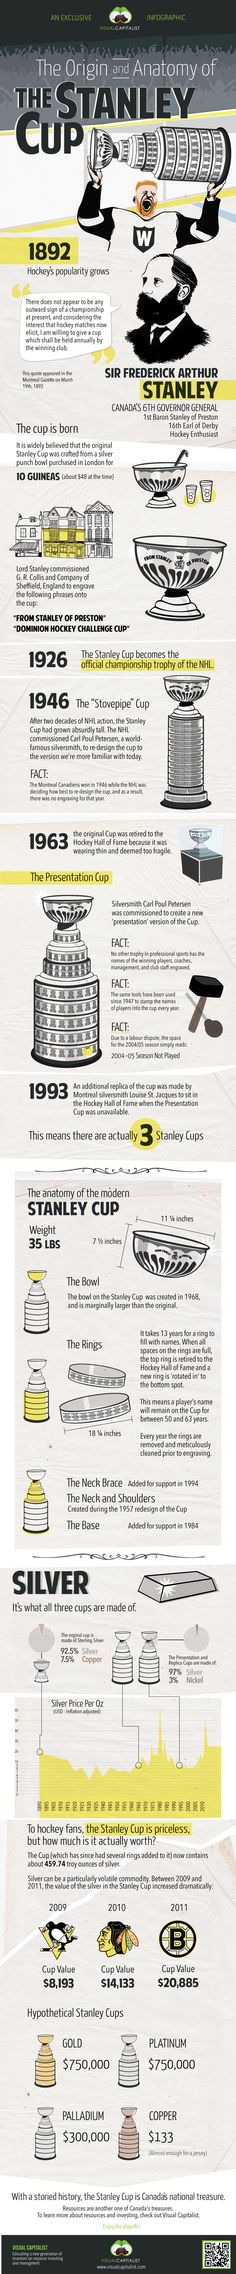 The origin and anatomy of the Stanley Cup